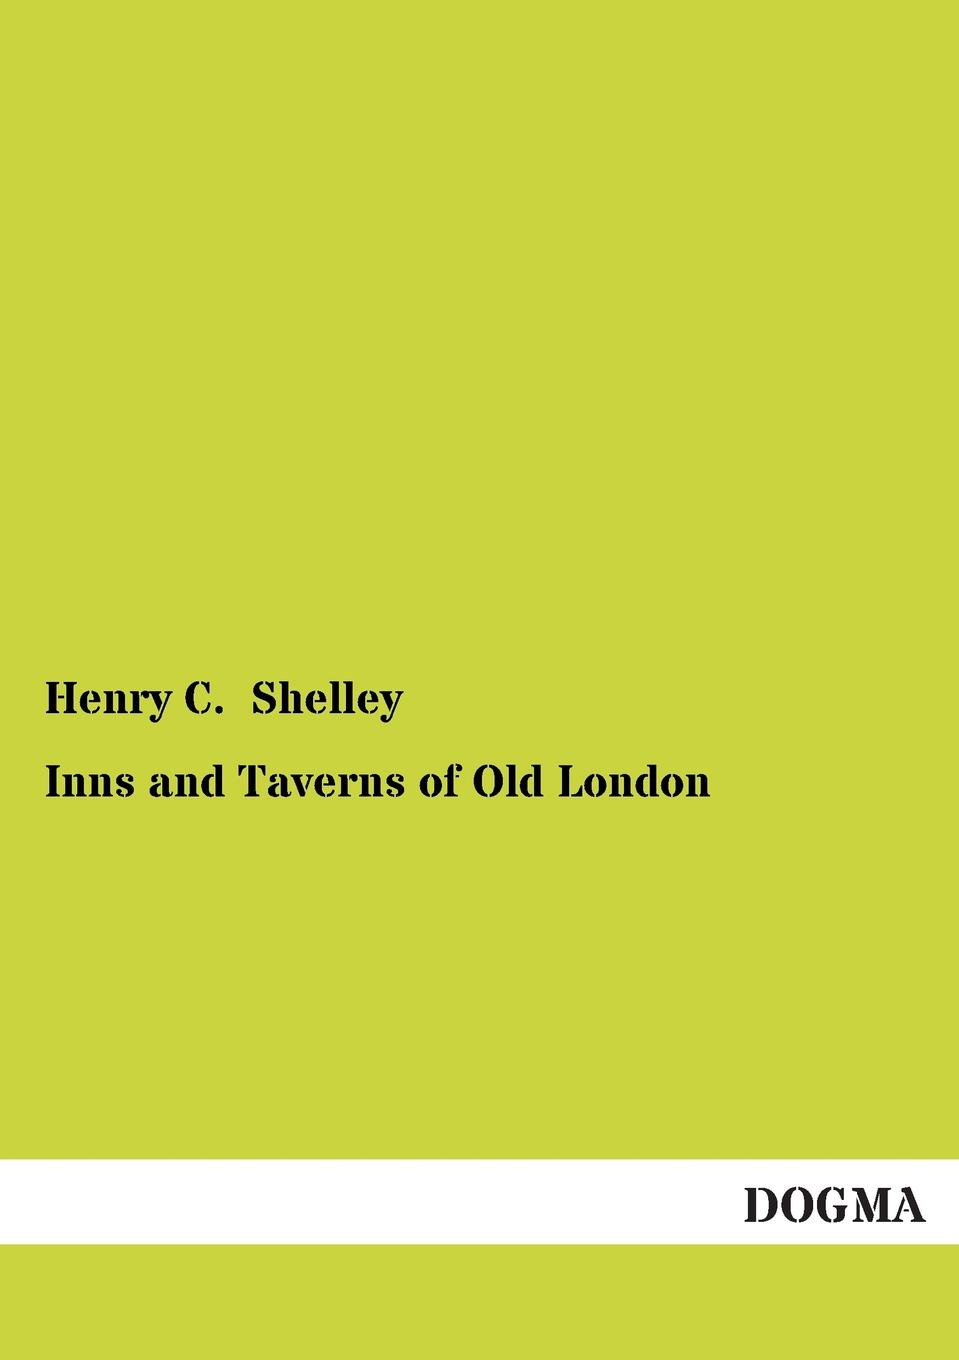 Henry C. Shelley Inns and Taverns of Old London geikie archibald annals of the royal society club the record of a london dining club in the eighteenth nineteenth centuries